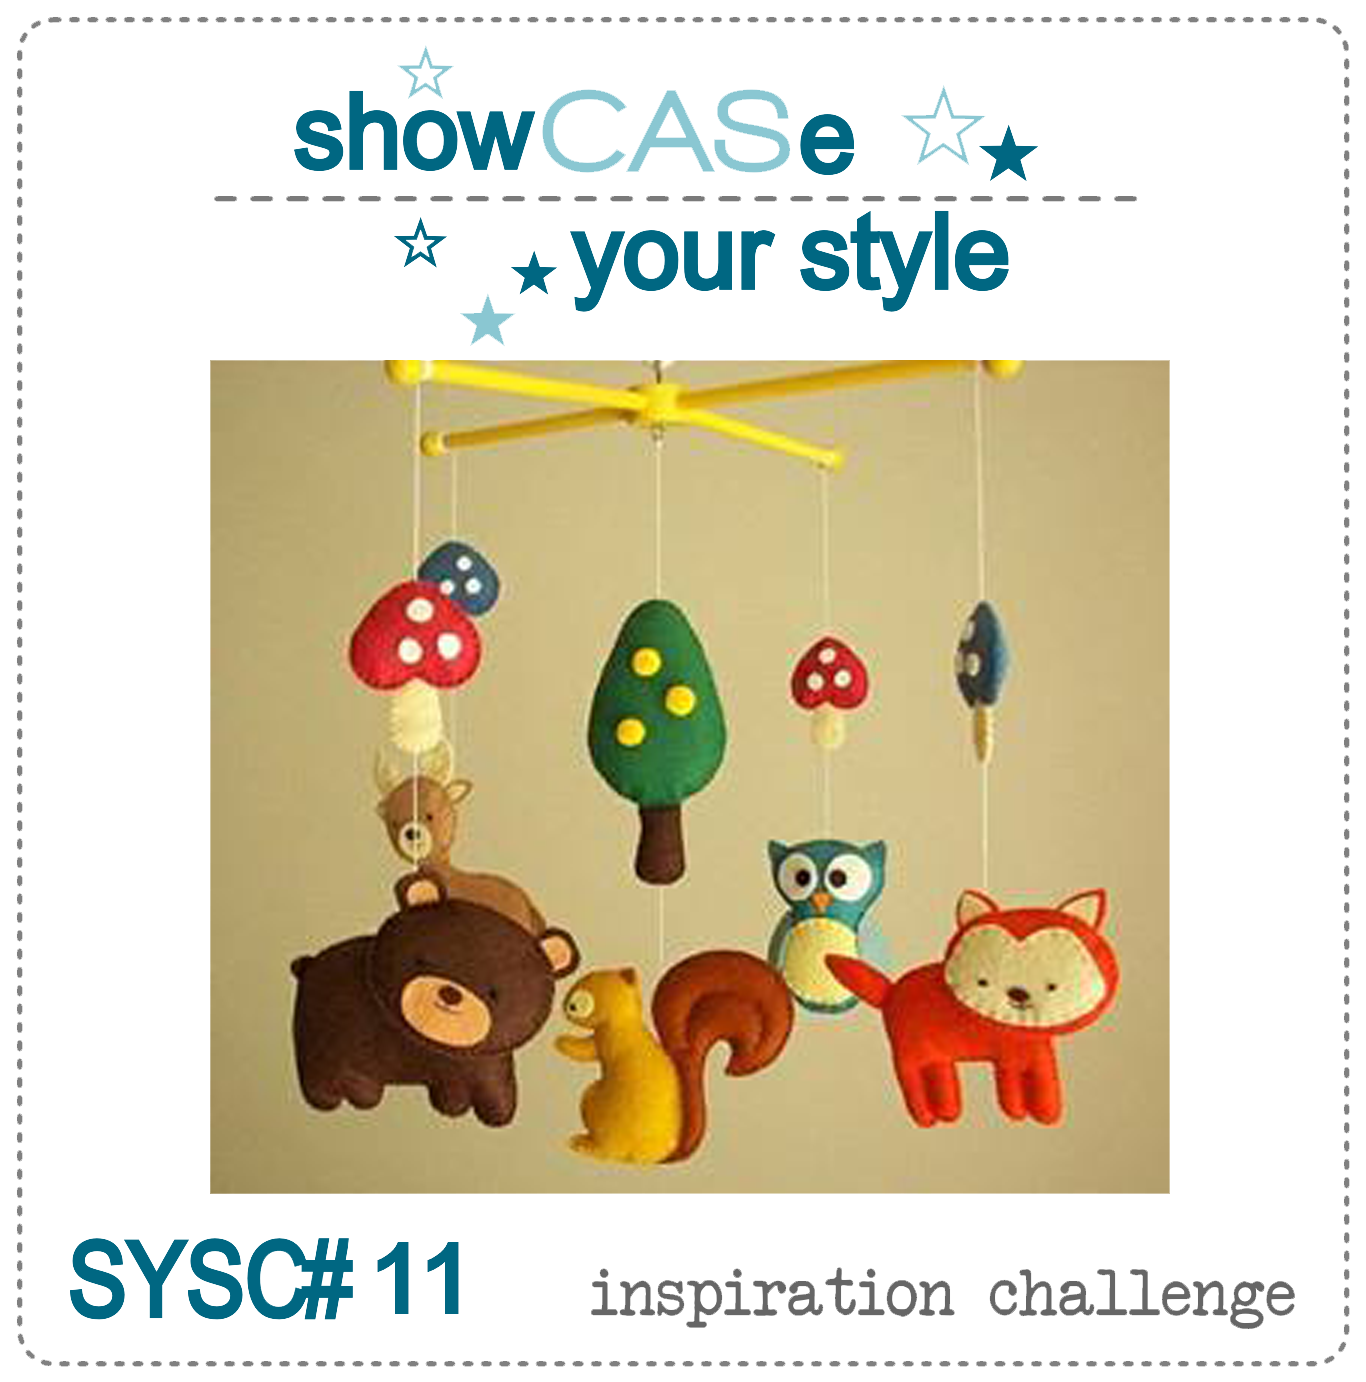 http://showcasechallenge.blogspot.com/2015/03/showcase-your-style-challenge-11.html